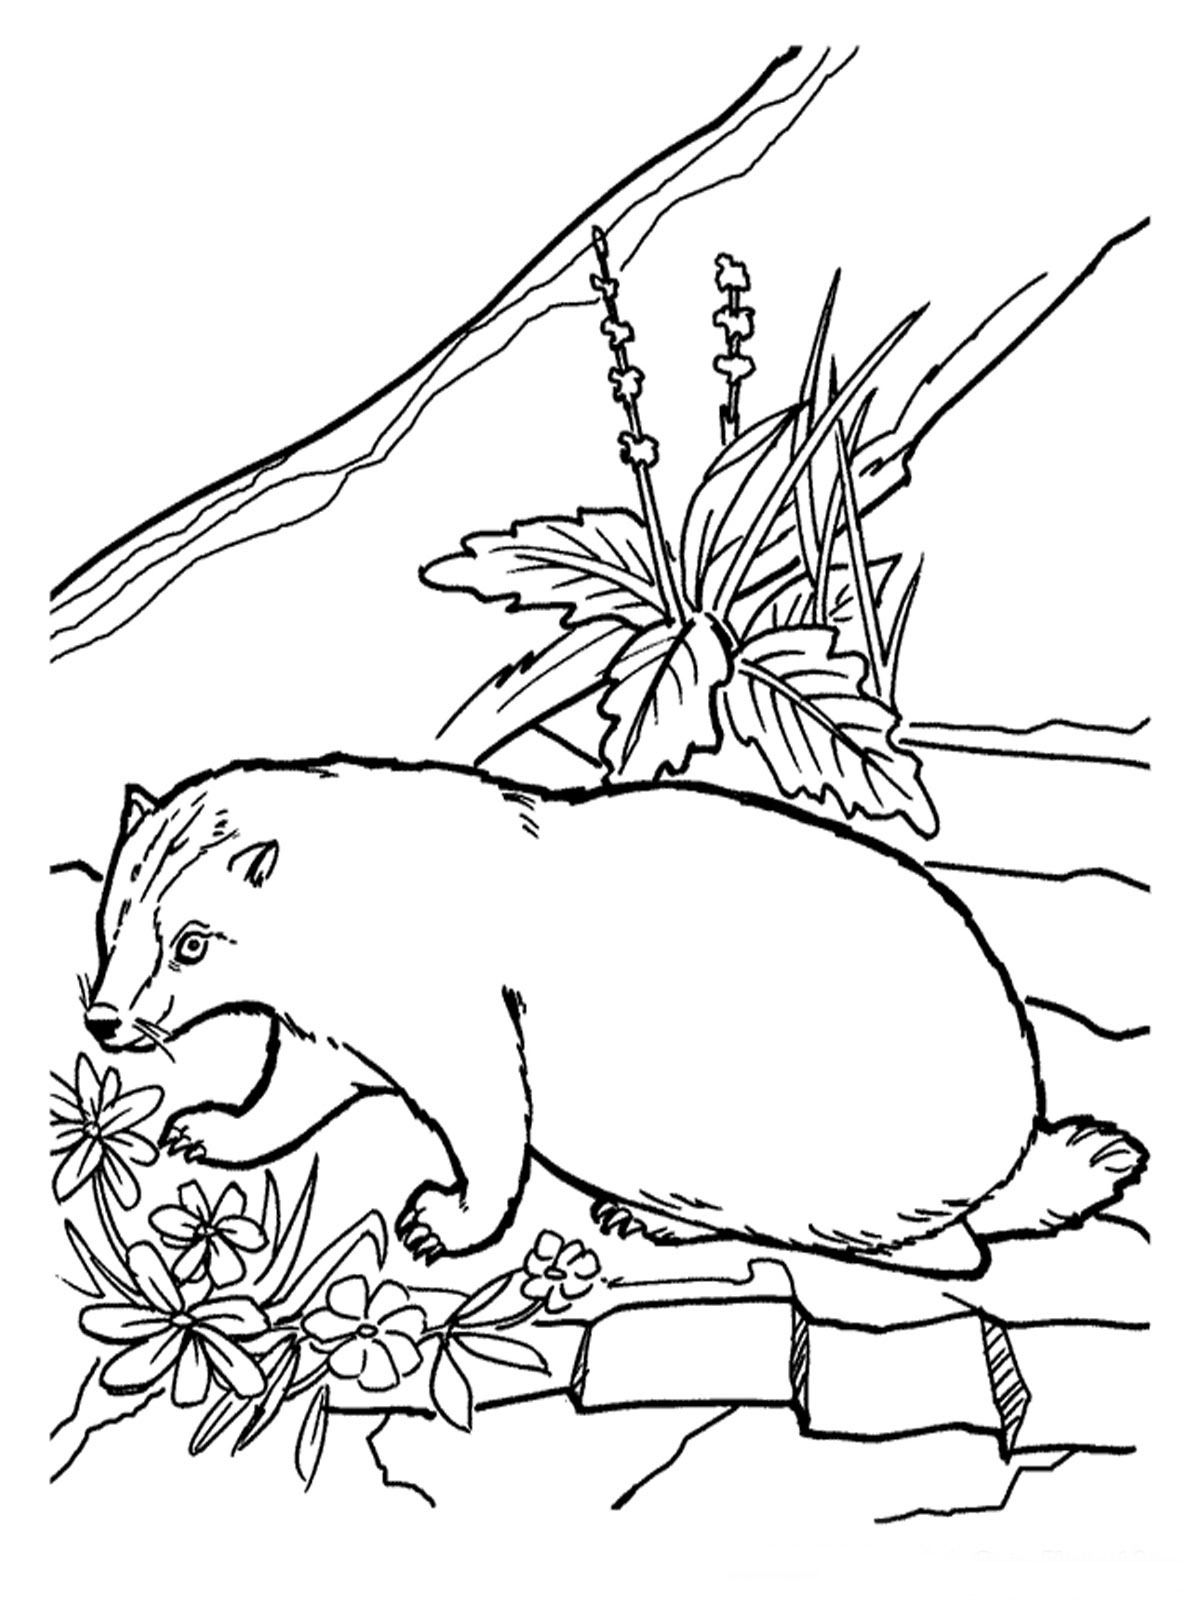 Badger Coloring Pages Http Www Kidscp Com Badger Coloring